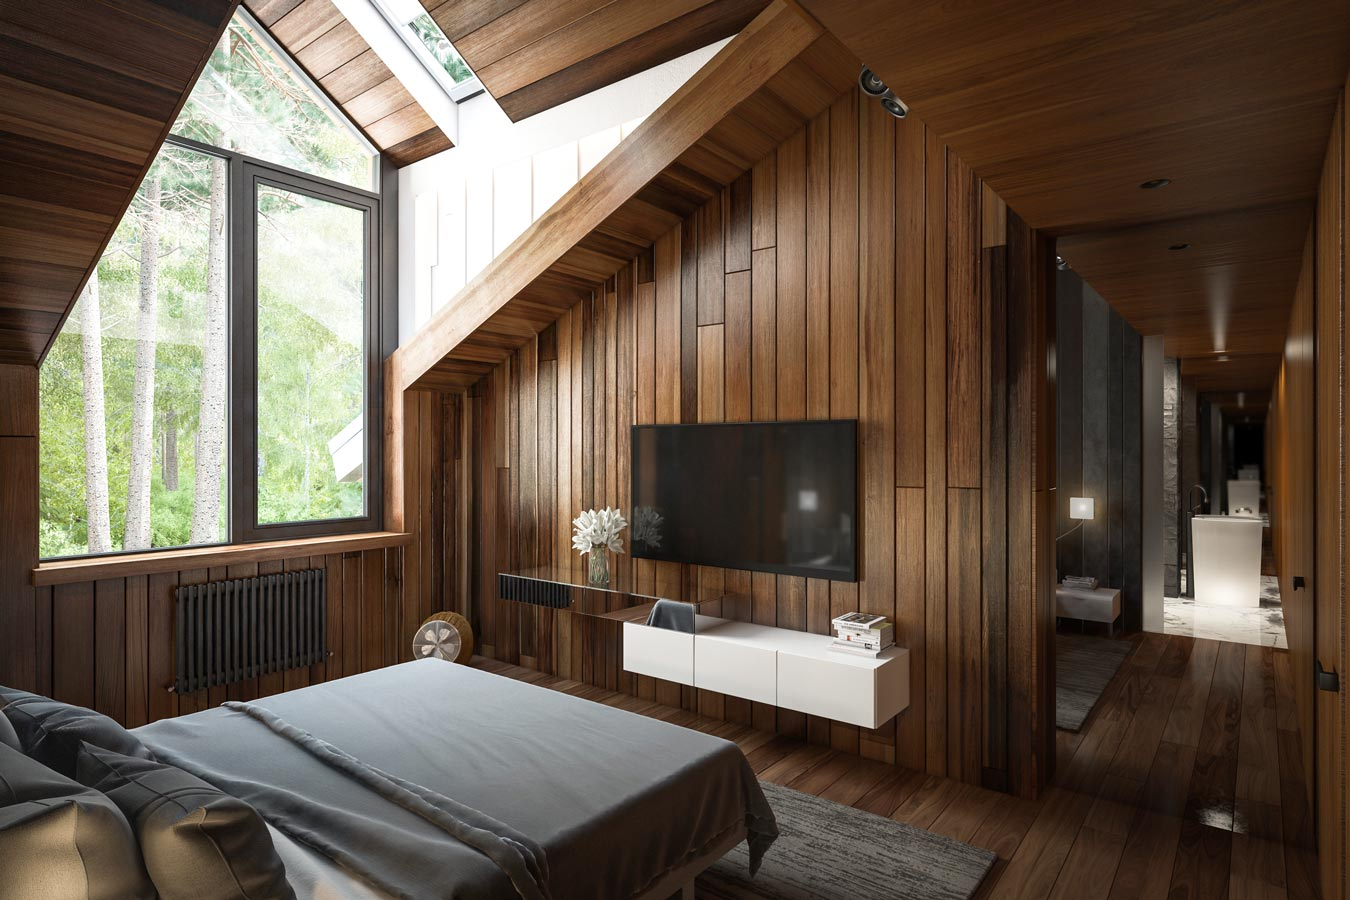 co-house in Zhukovka — guest room